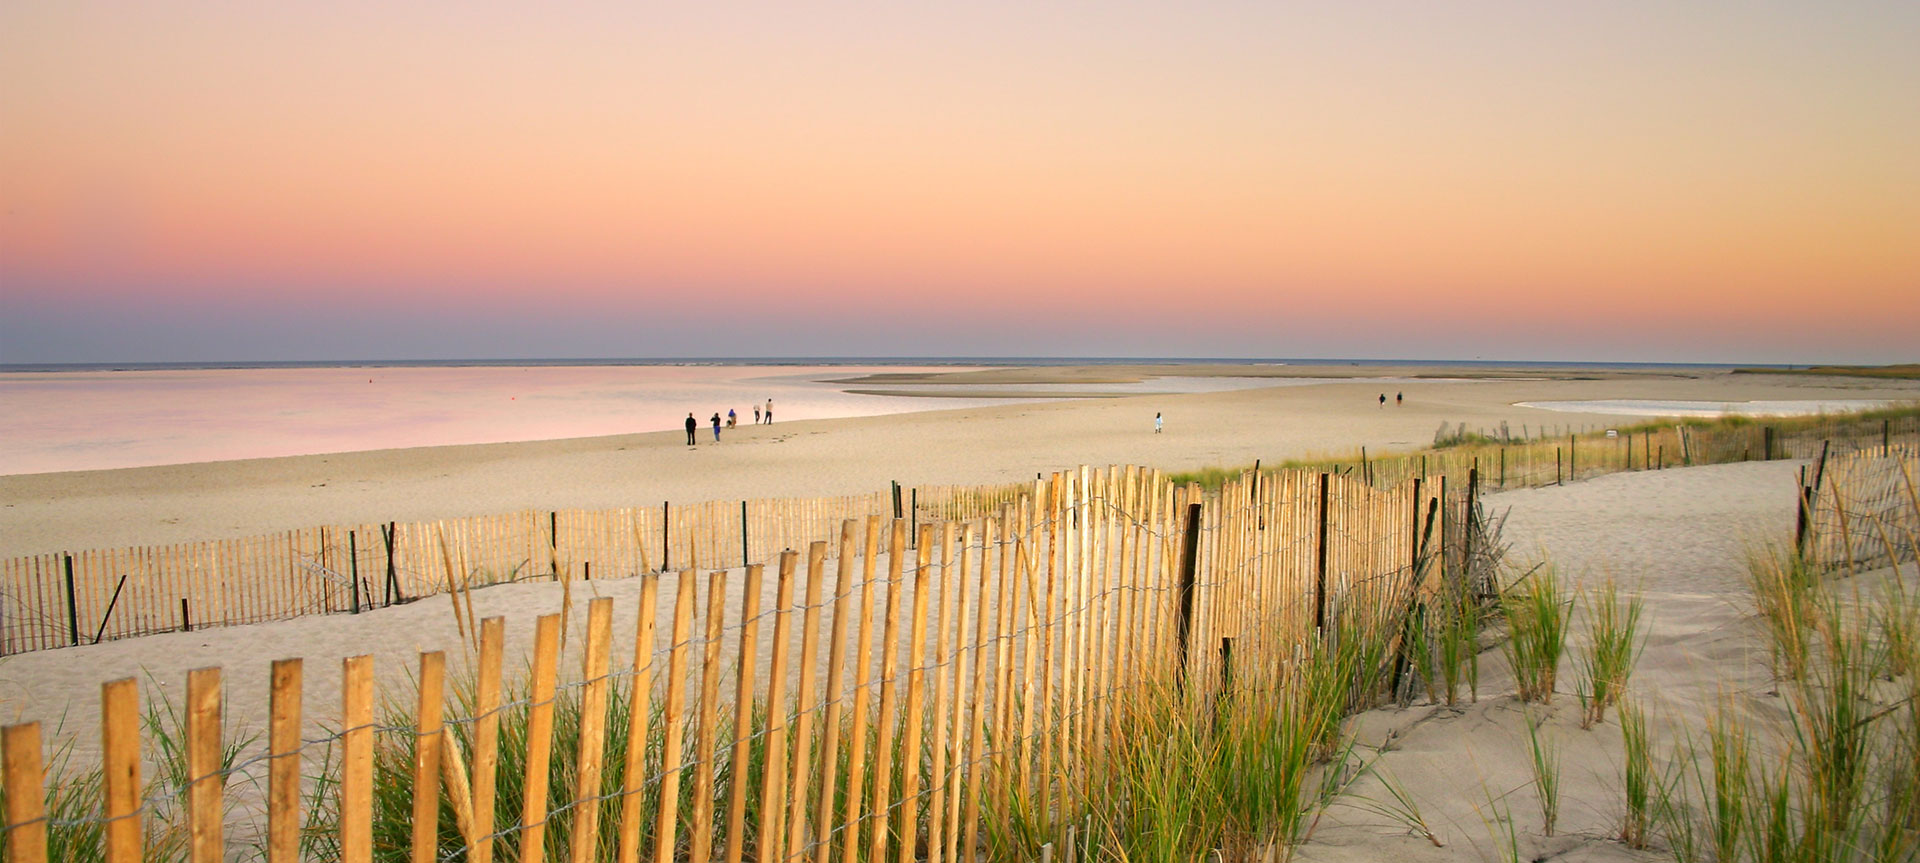 Beautiful sunset on the beach with sea grass and a fence in the foreground | Brewster By the Sea Cape Cod Inn | Brewster, MA